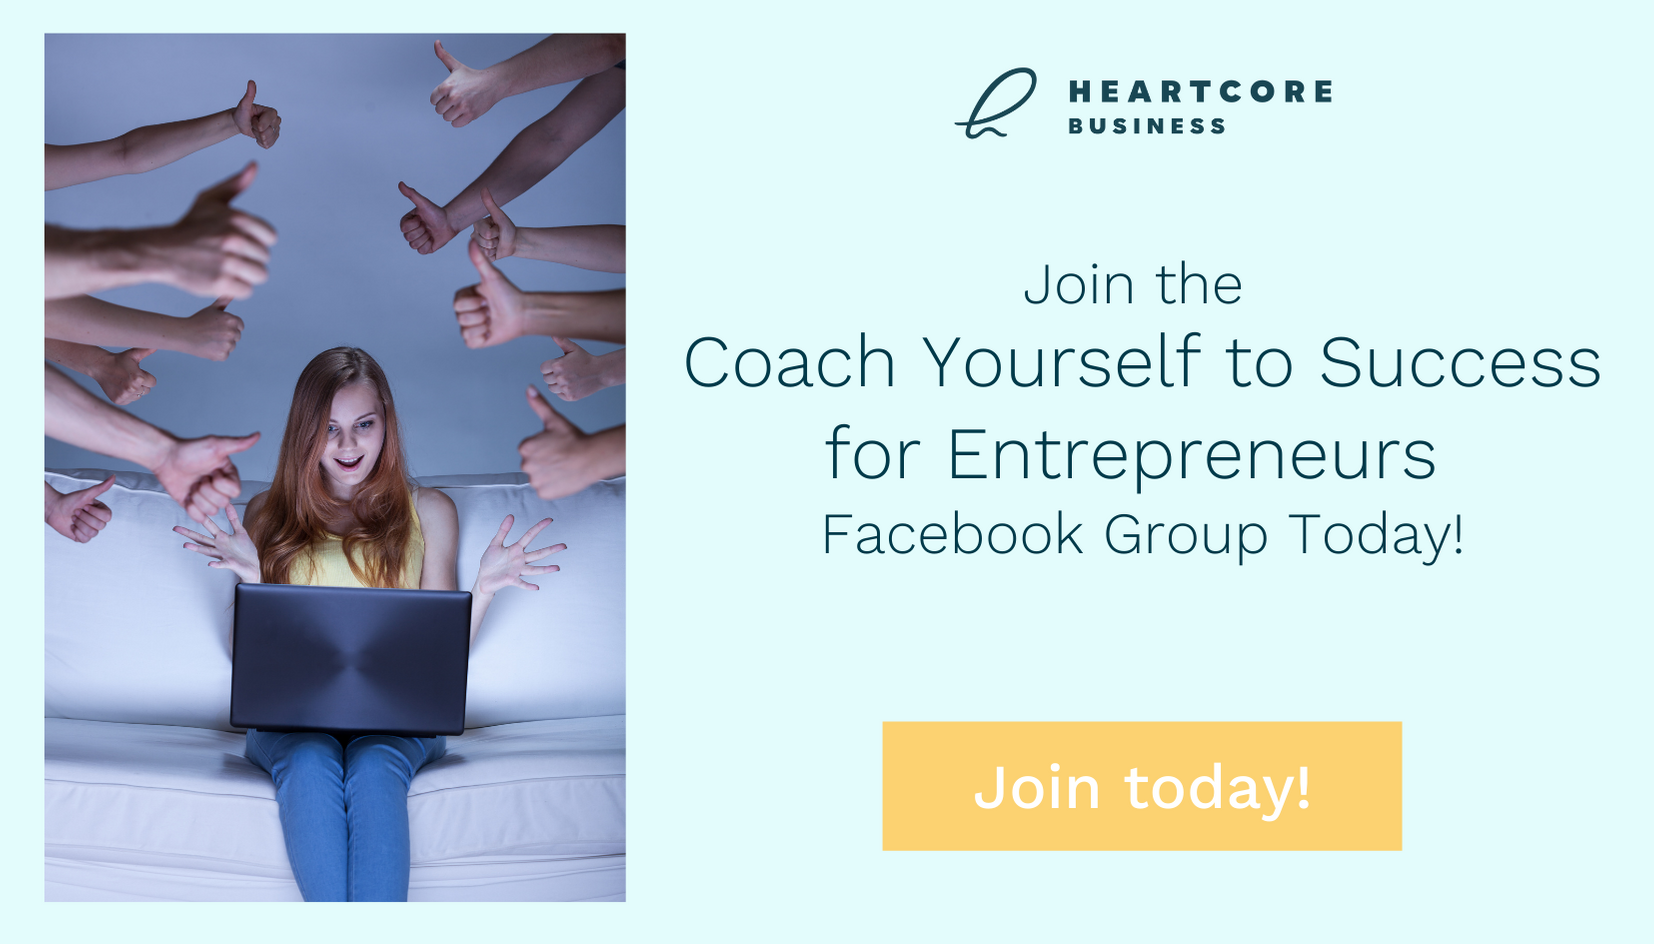 Join the Coach Yourself to Success for Entrepreneurs Facebook Group Today